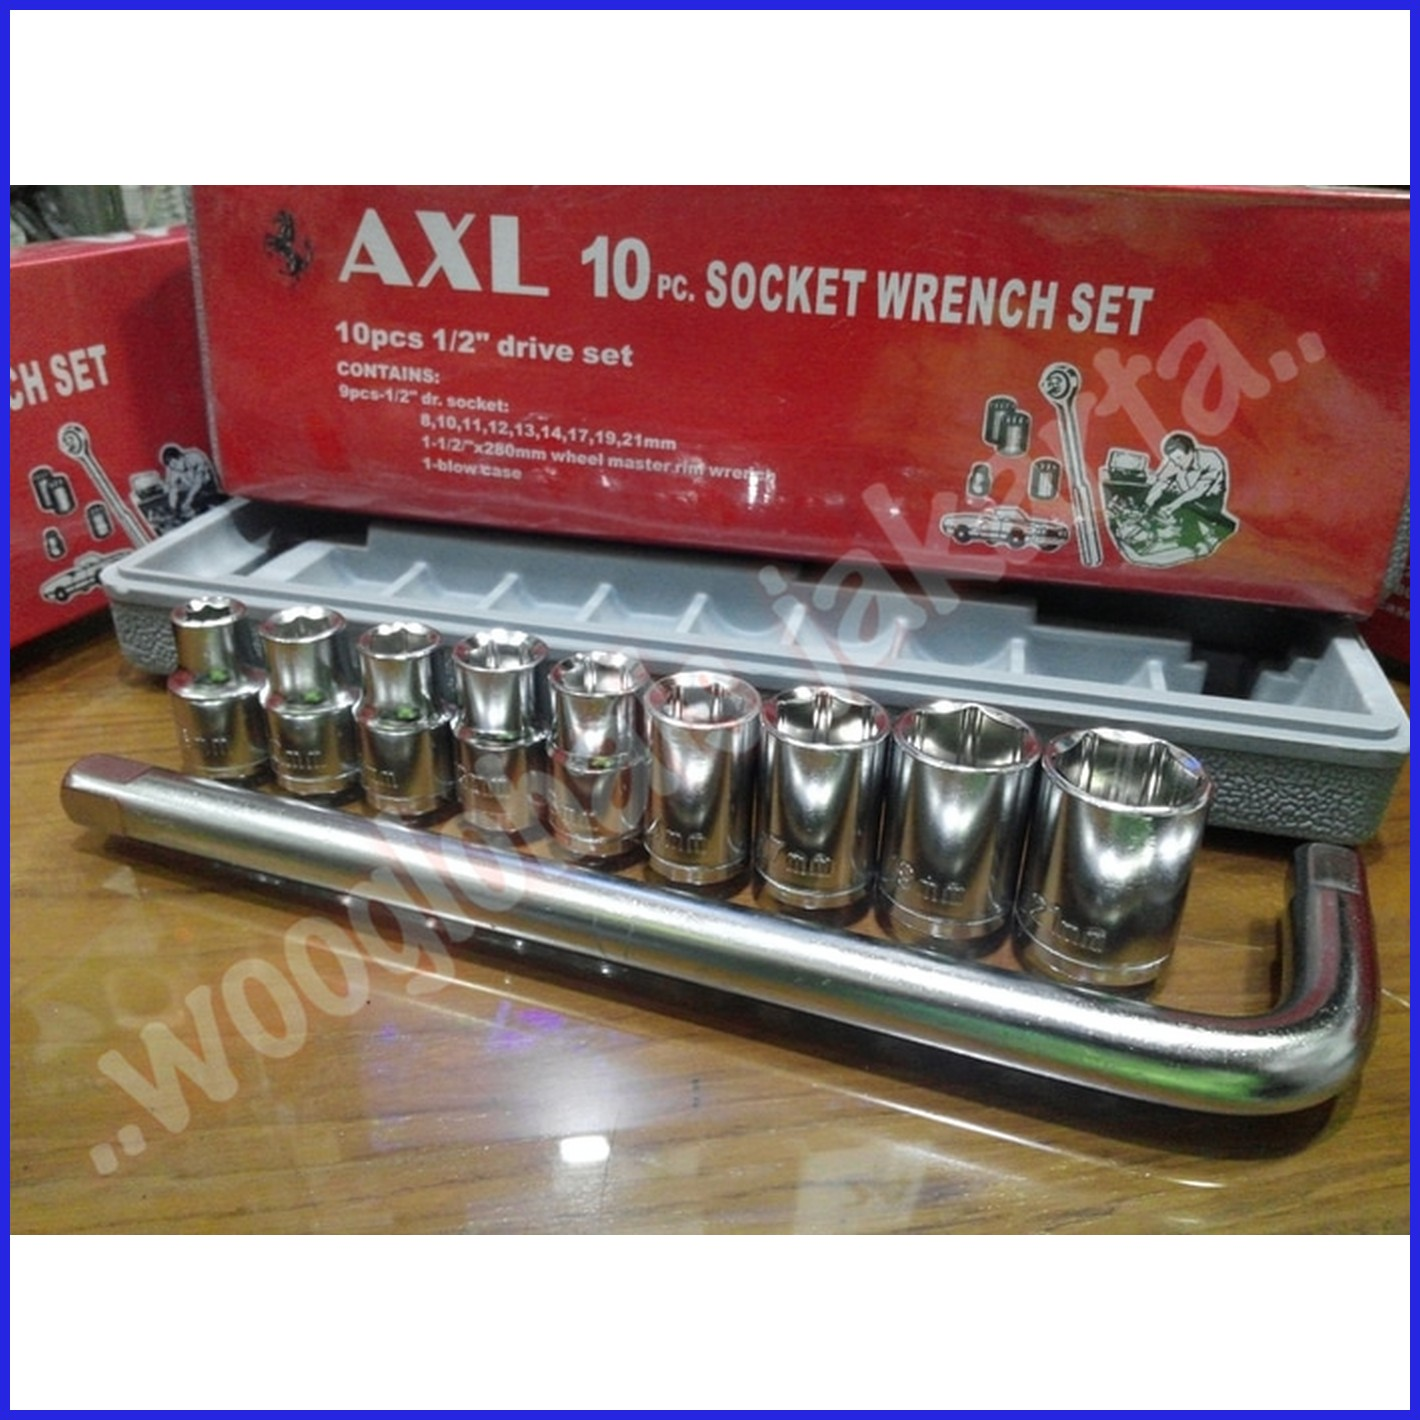 Kunci Sok 10 Pcs Socket Wrench Set Spec Dan Daftar Harga Terbaru 1 Obeng Pc Sxl Quality Hand Toolset Pro Original